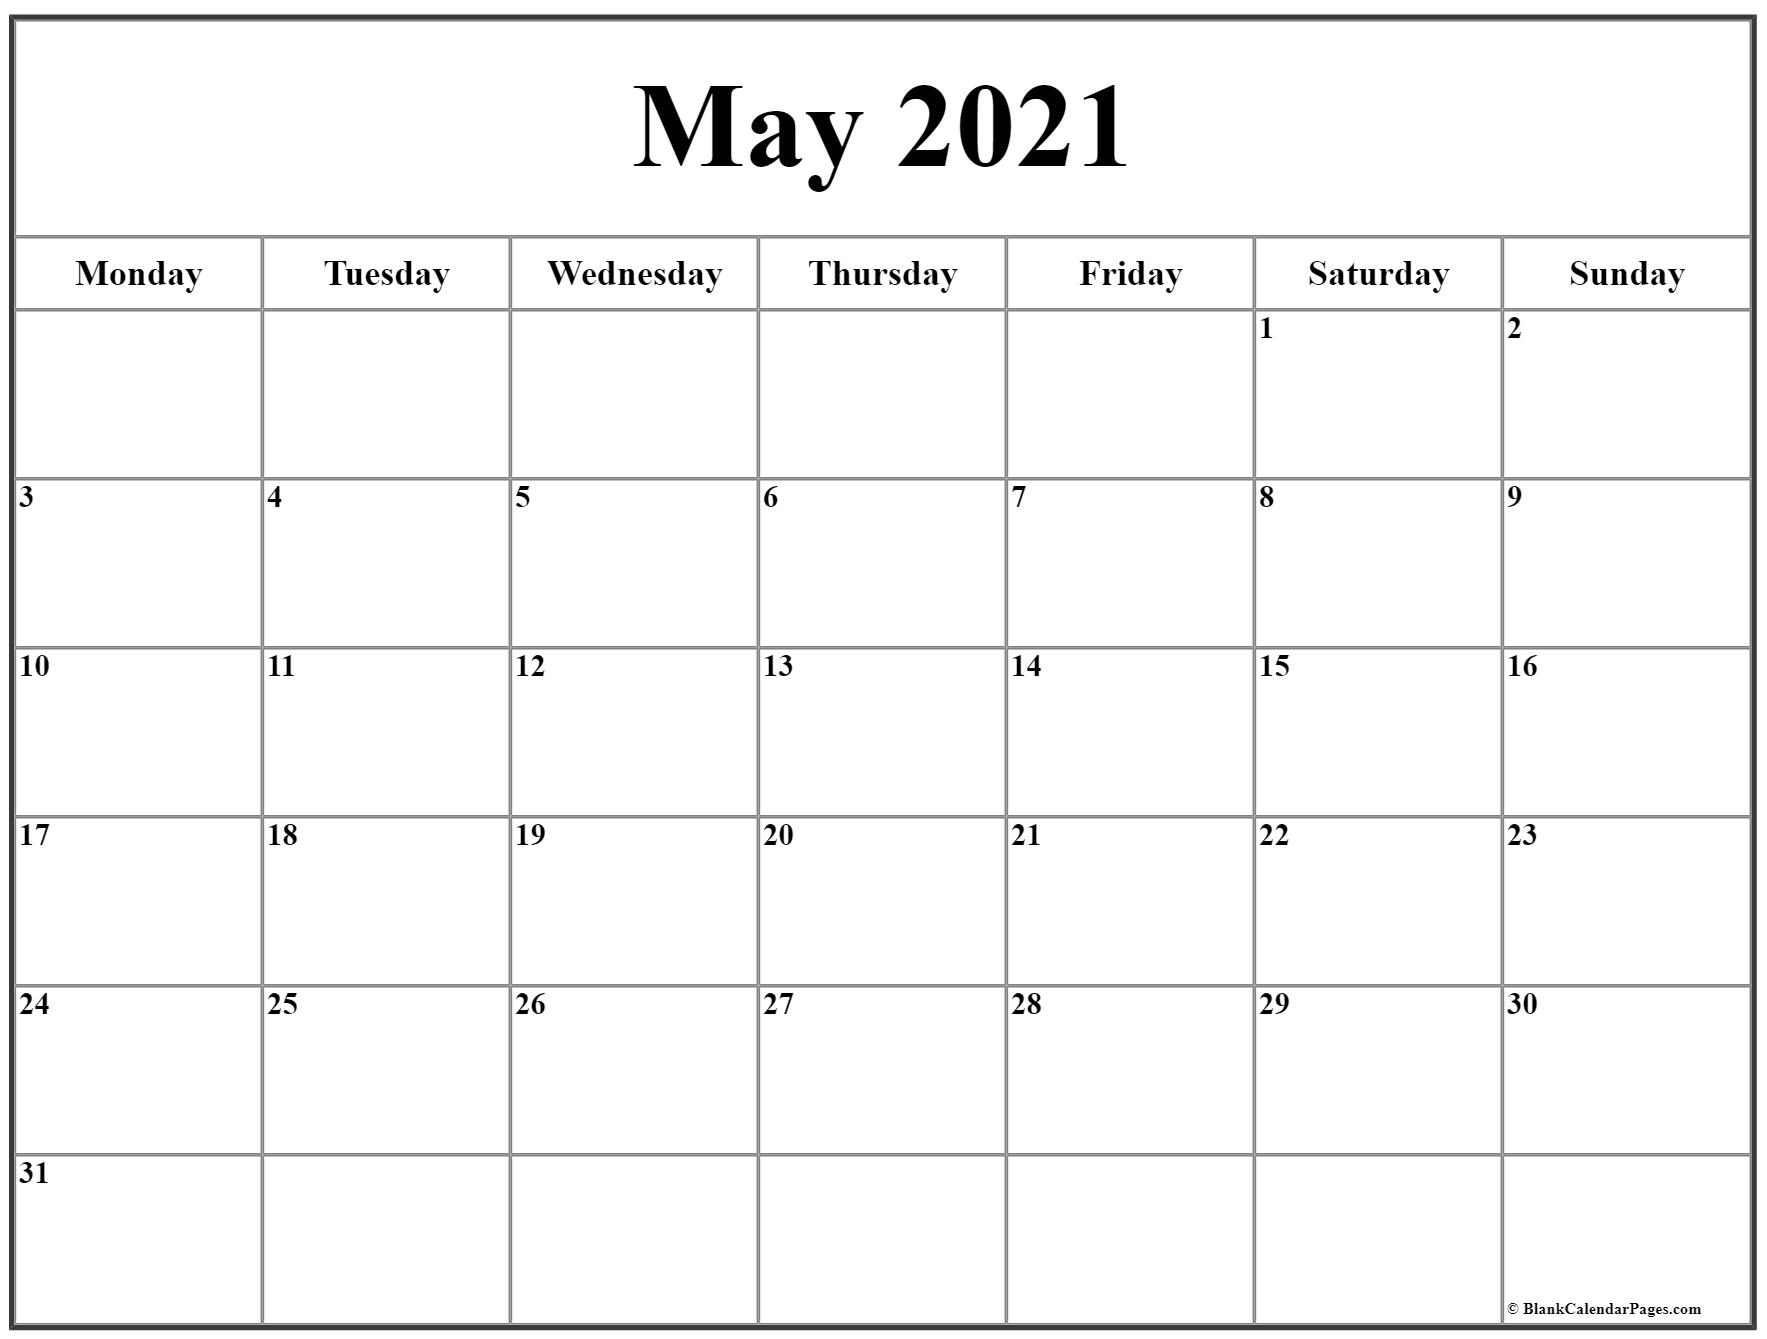 May 2021 Monday Calendar | Monday To Sunday